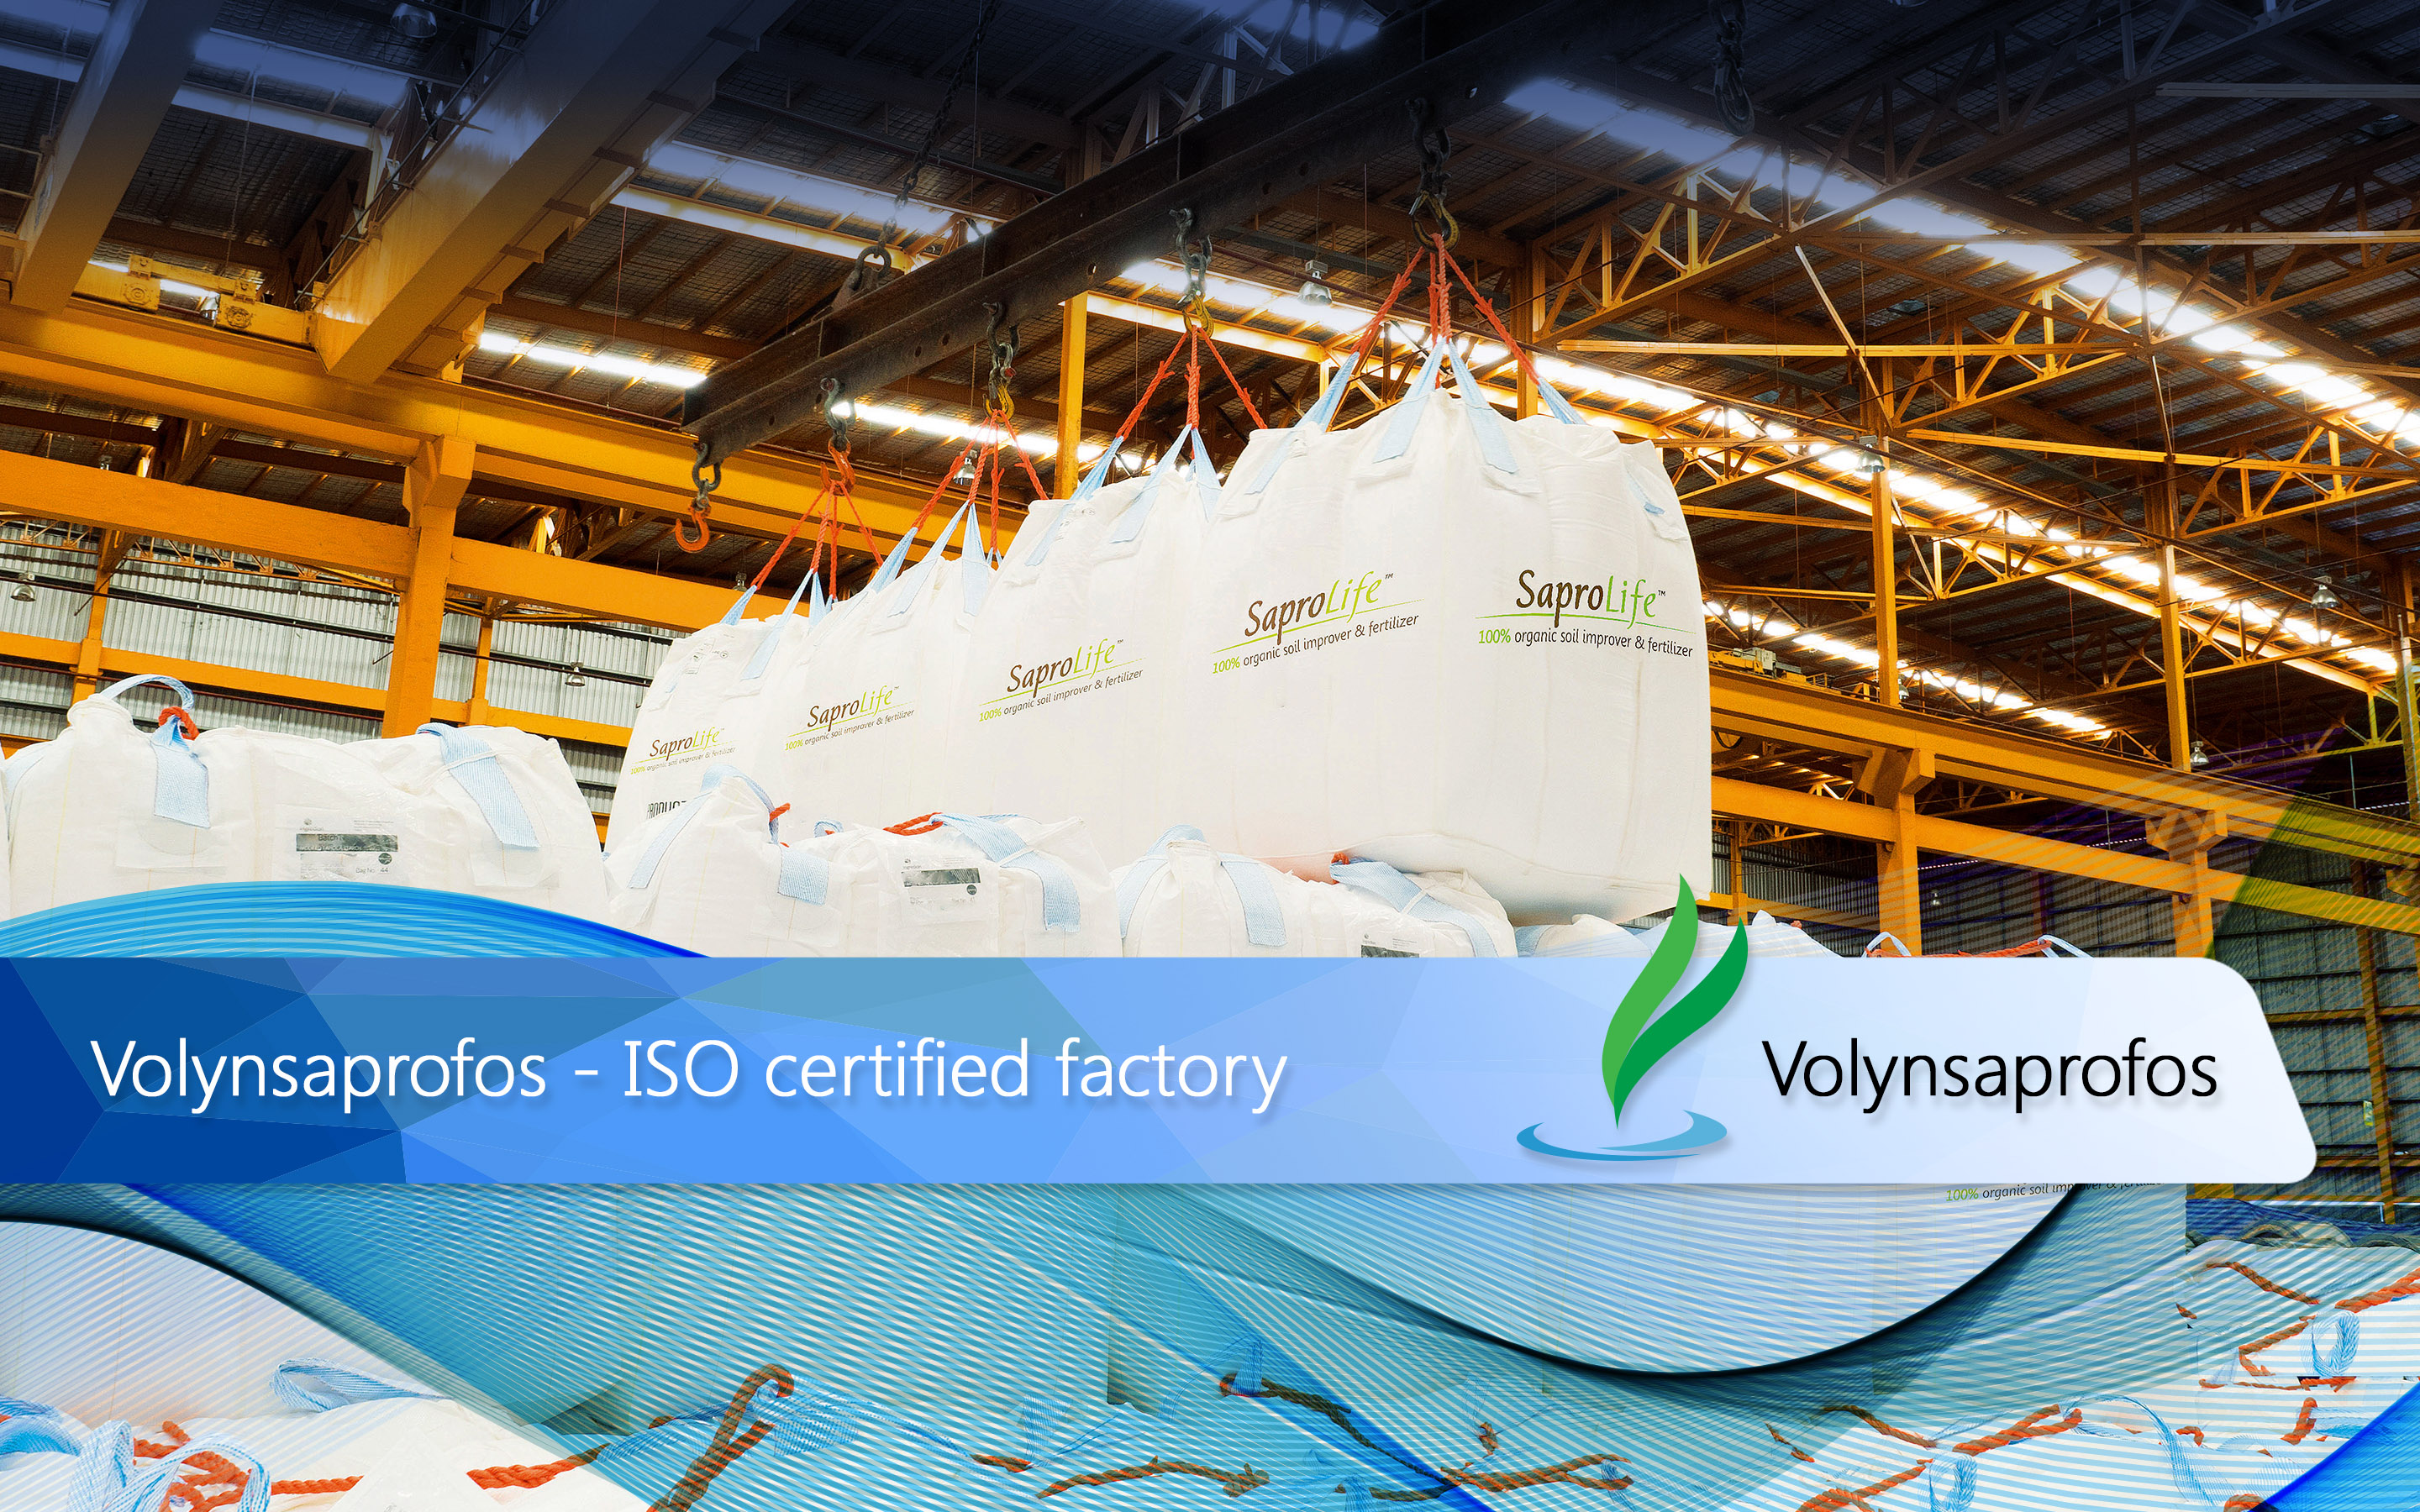 4-Volynsaprofos-ISO-certified-factory